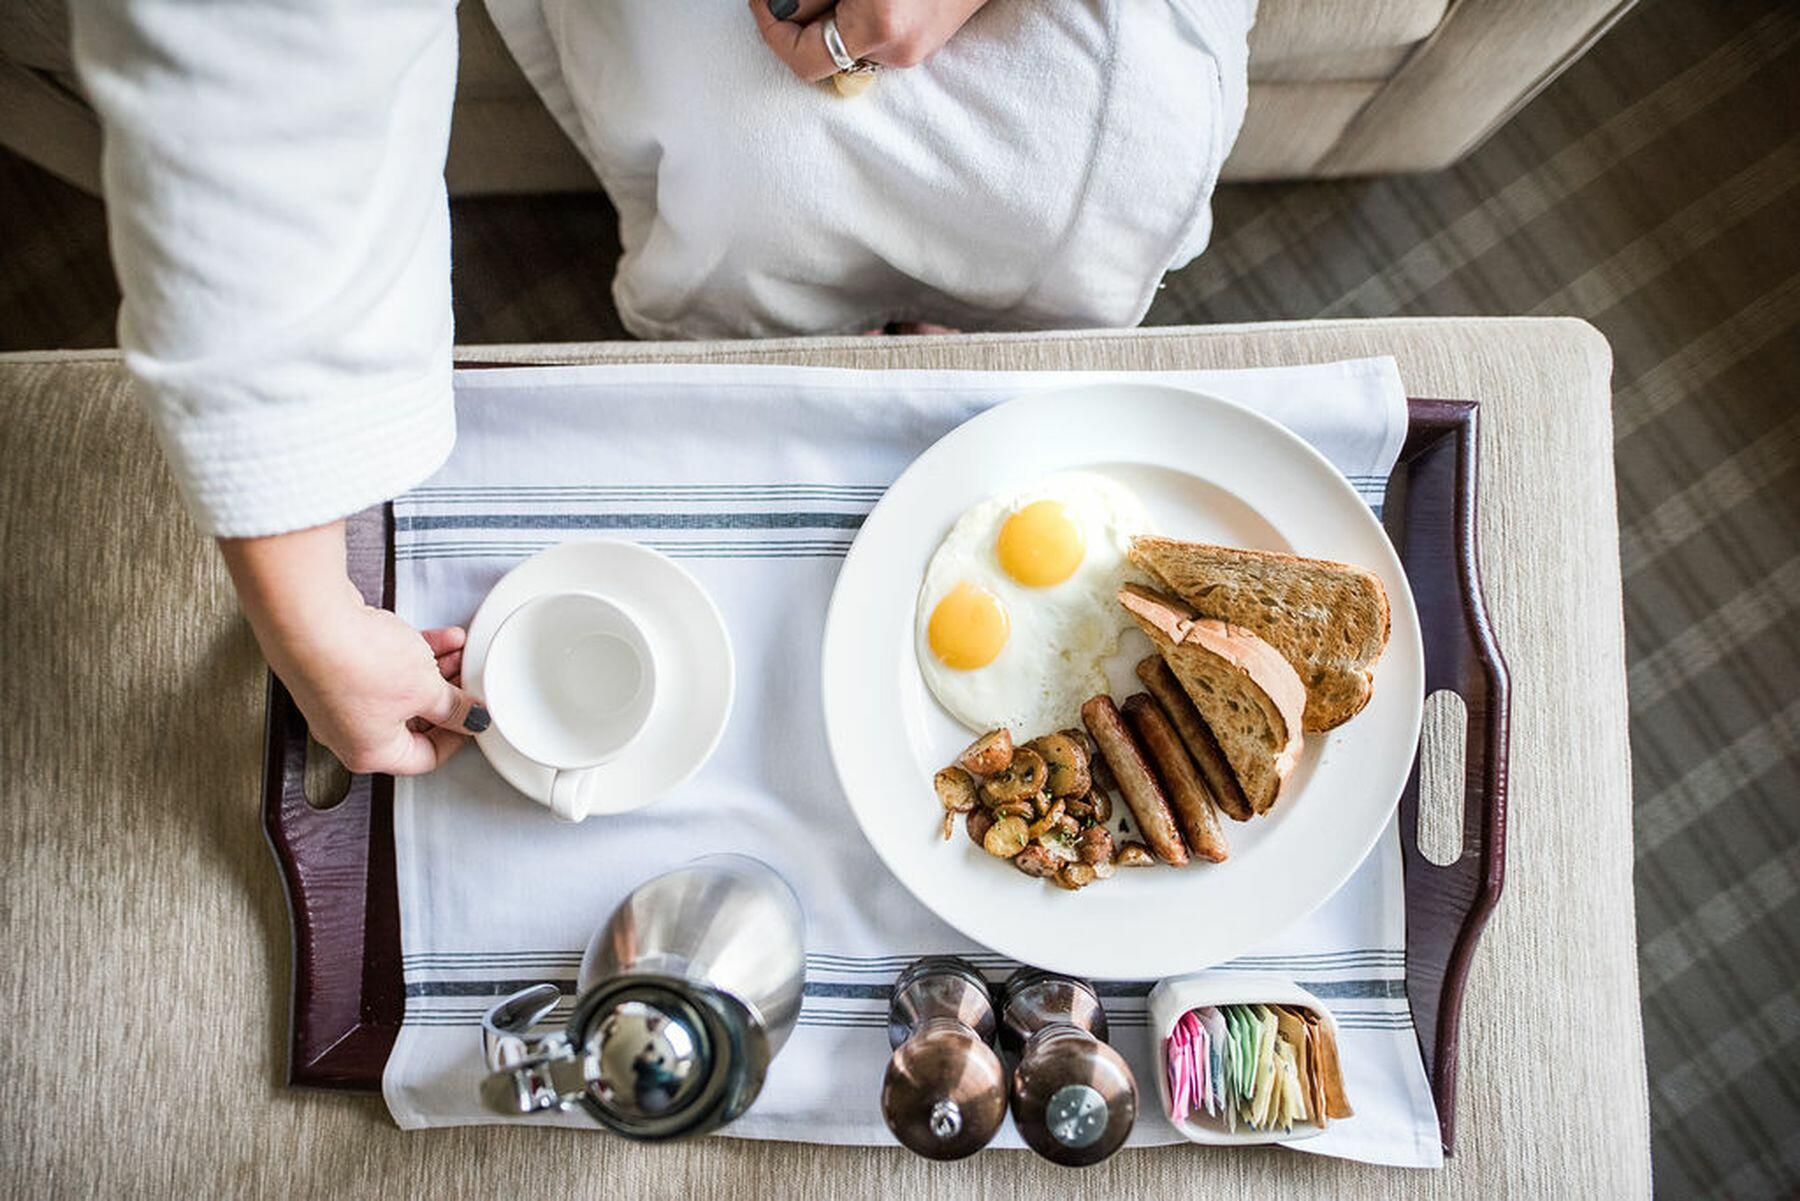 Breakfast serving tray for room service.